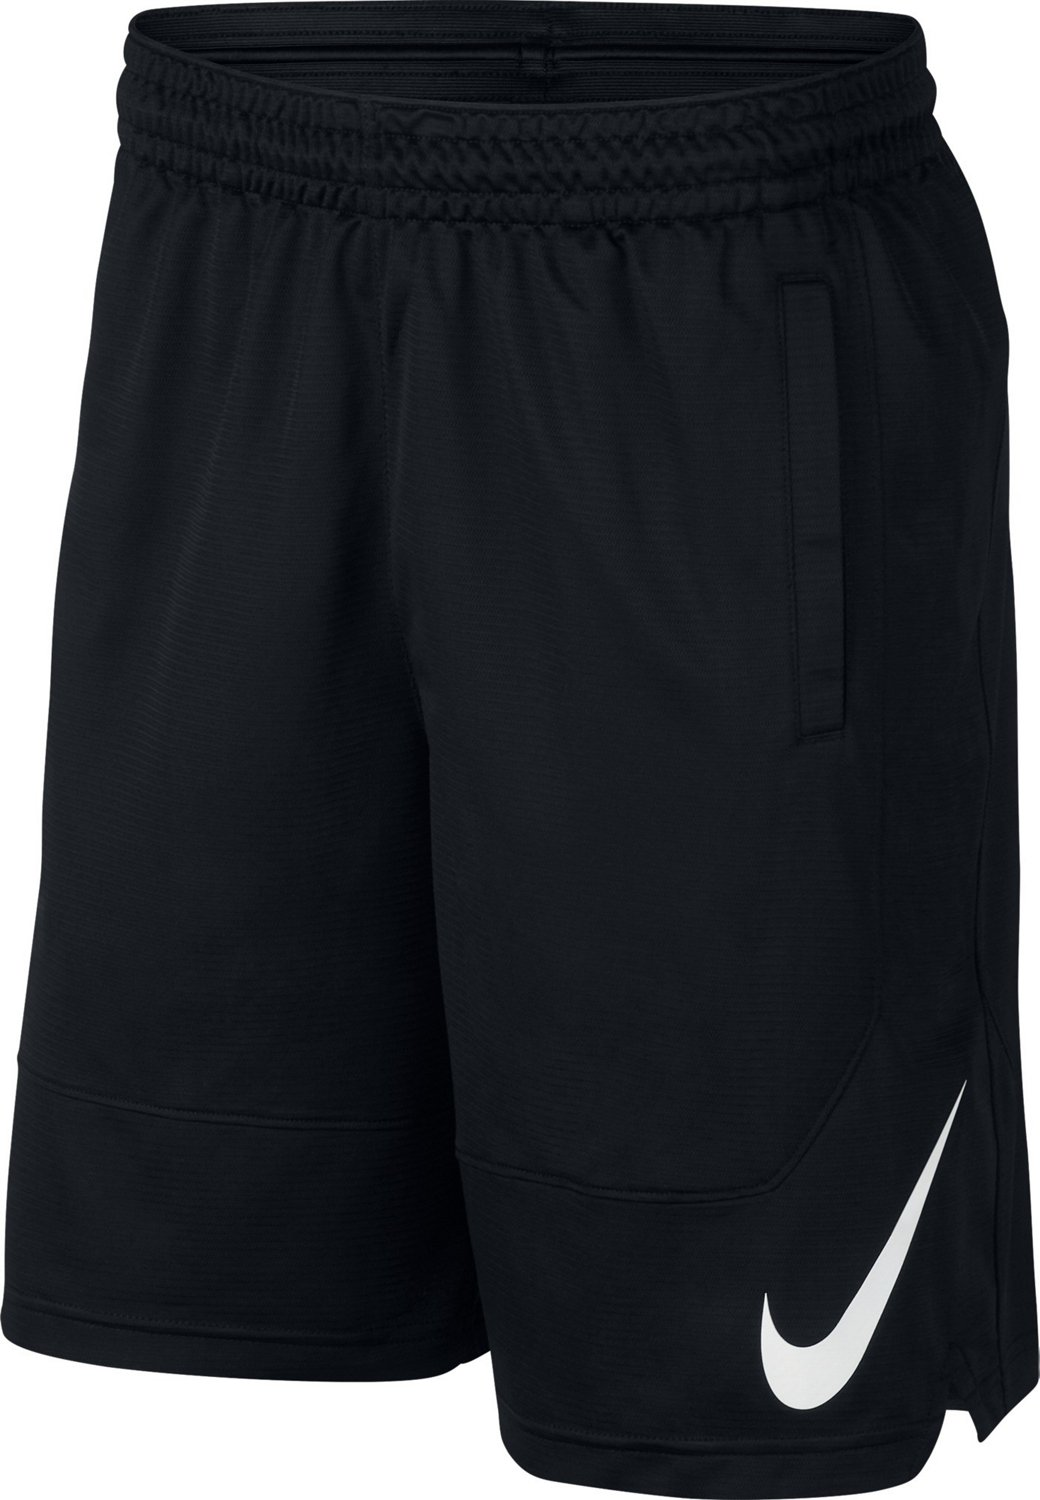 07846731a Nike Men's Asymmetrical Dri-FIT 9